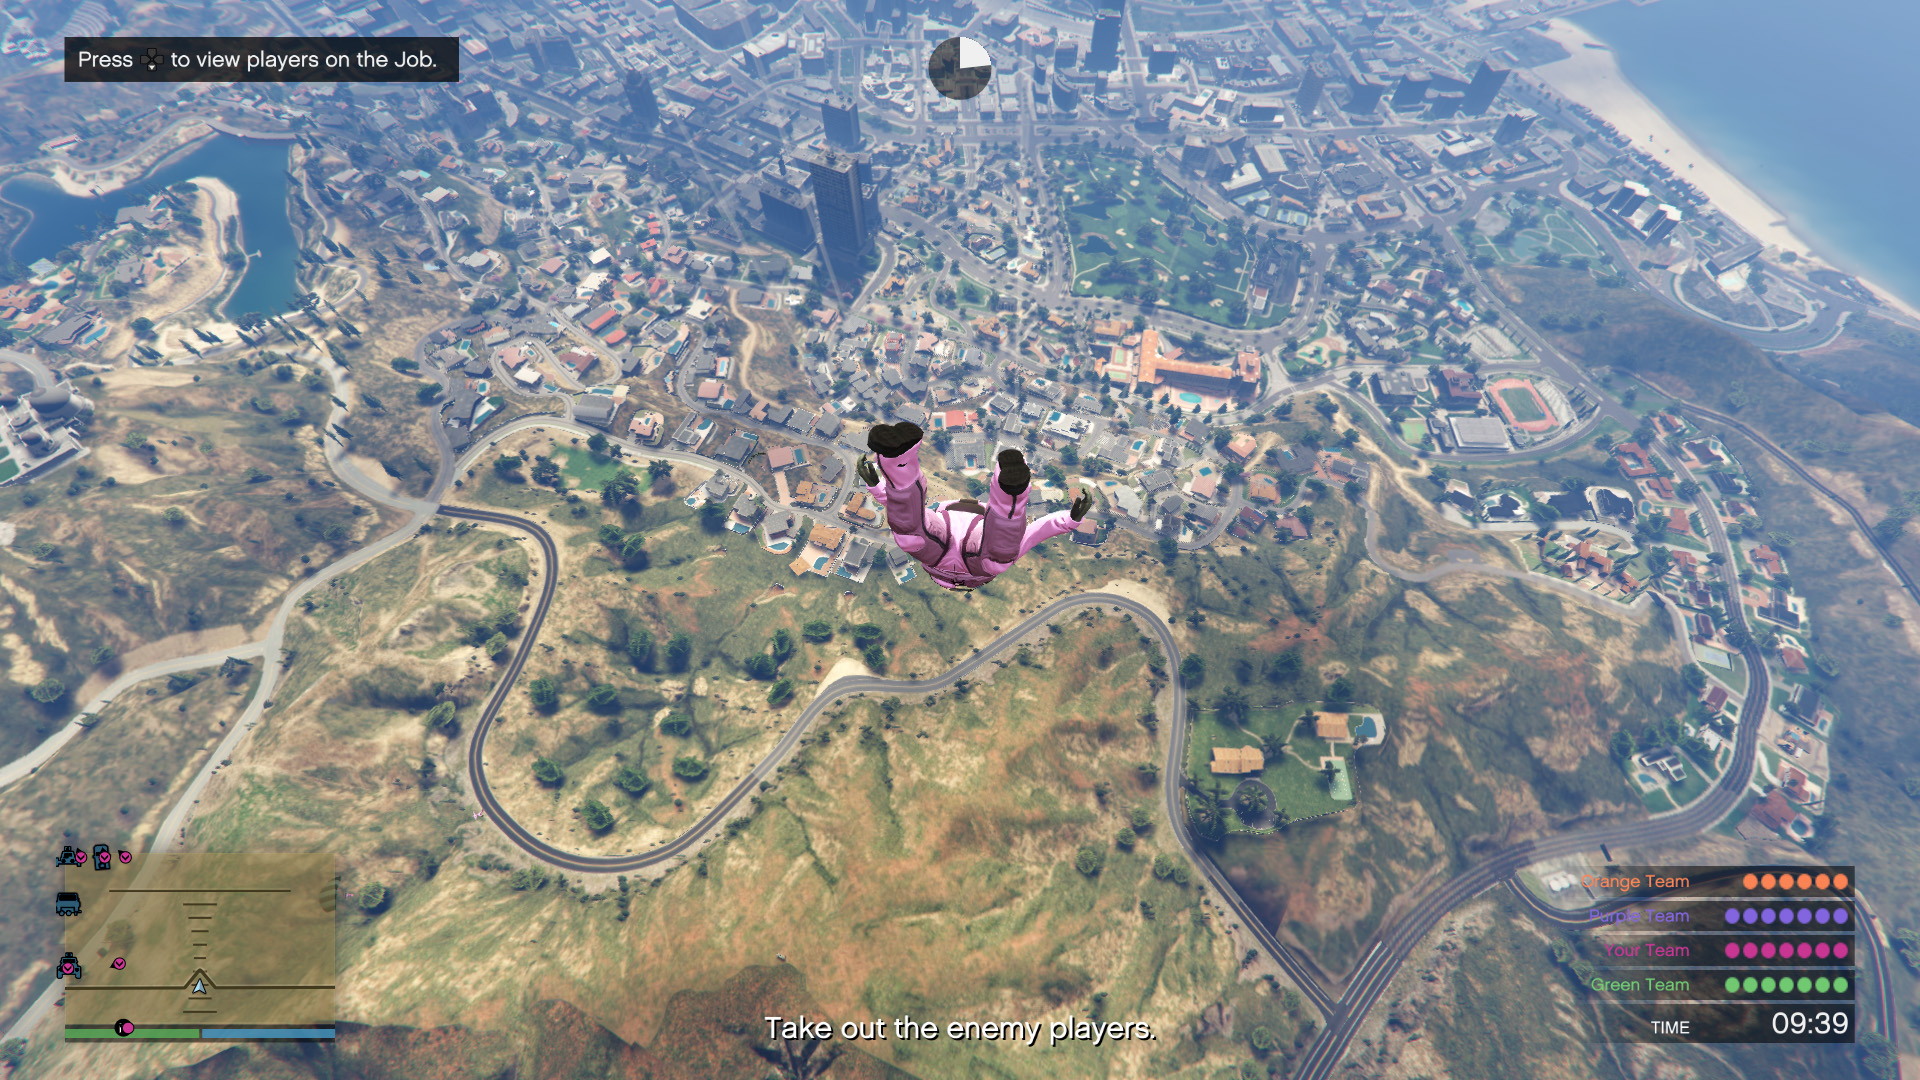 New Pubg Map Is Coming By July: GTA Online's Motor Wars Is No PUBG, But It Doesn't Need To